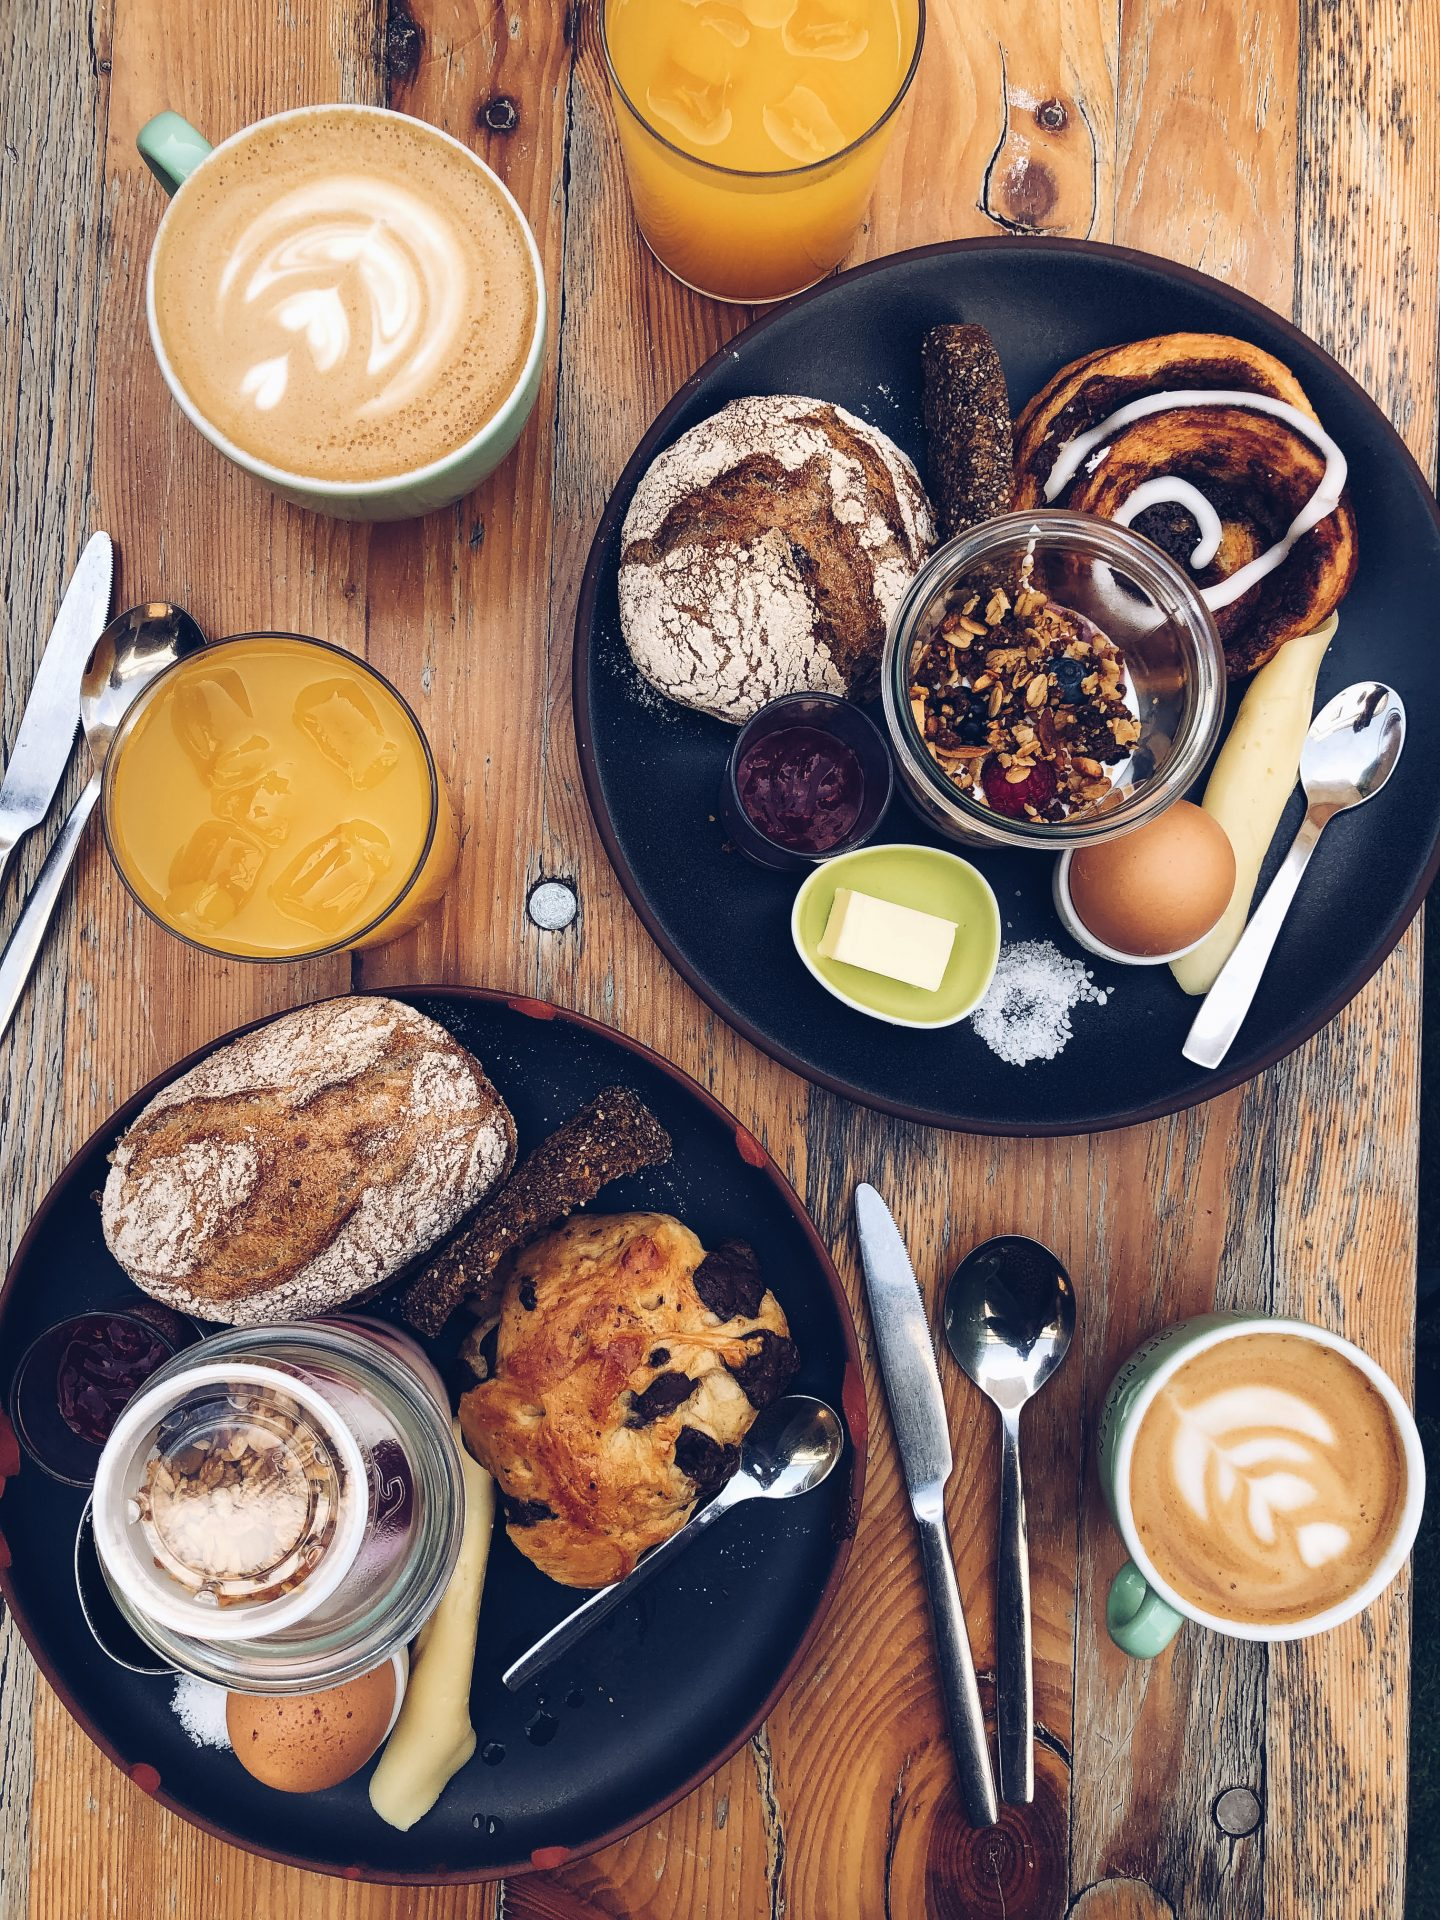 breakfast flatlay with pastries, bread and granola